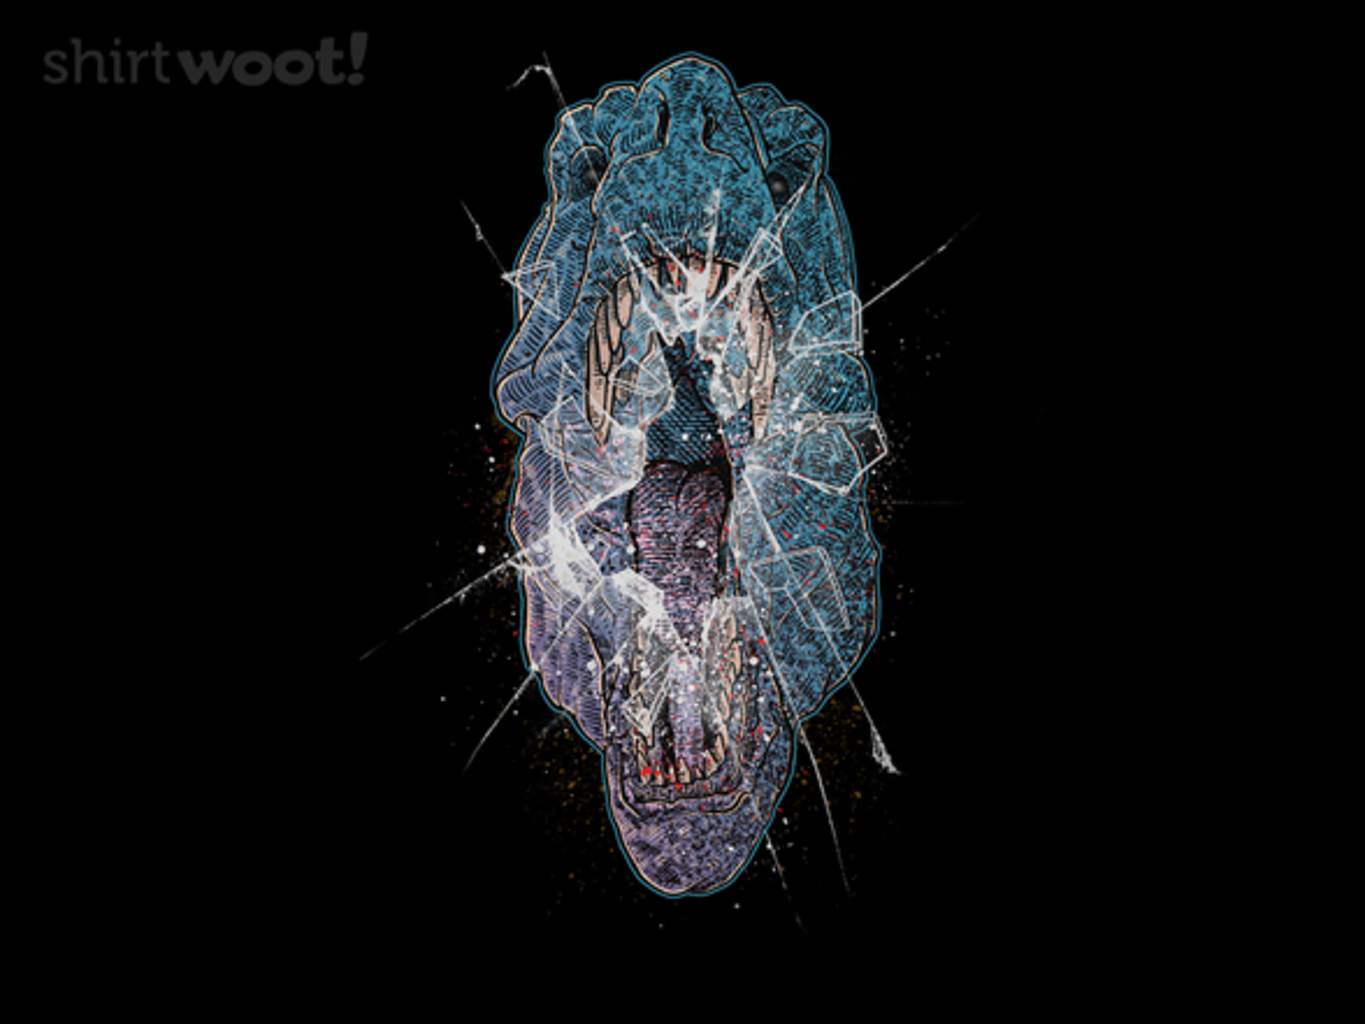 Woot!: Shock and Destroy